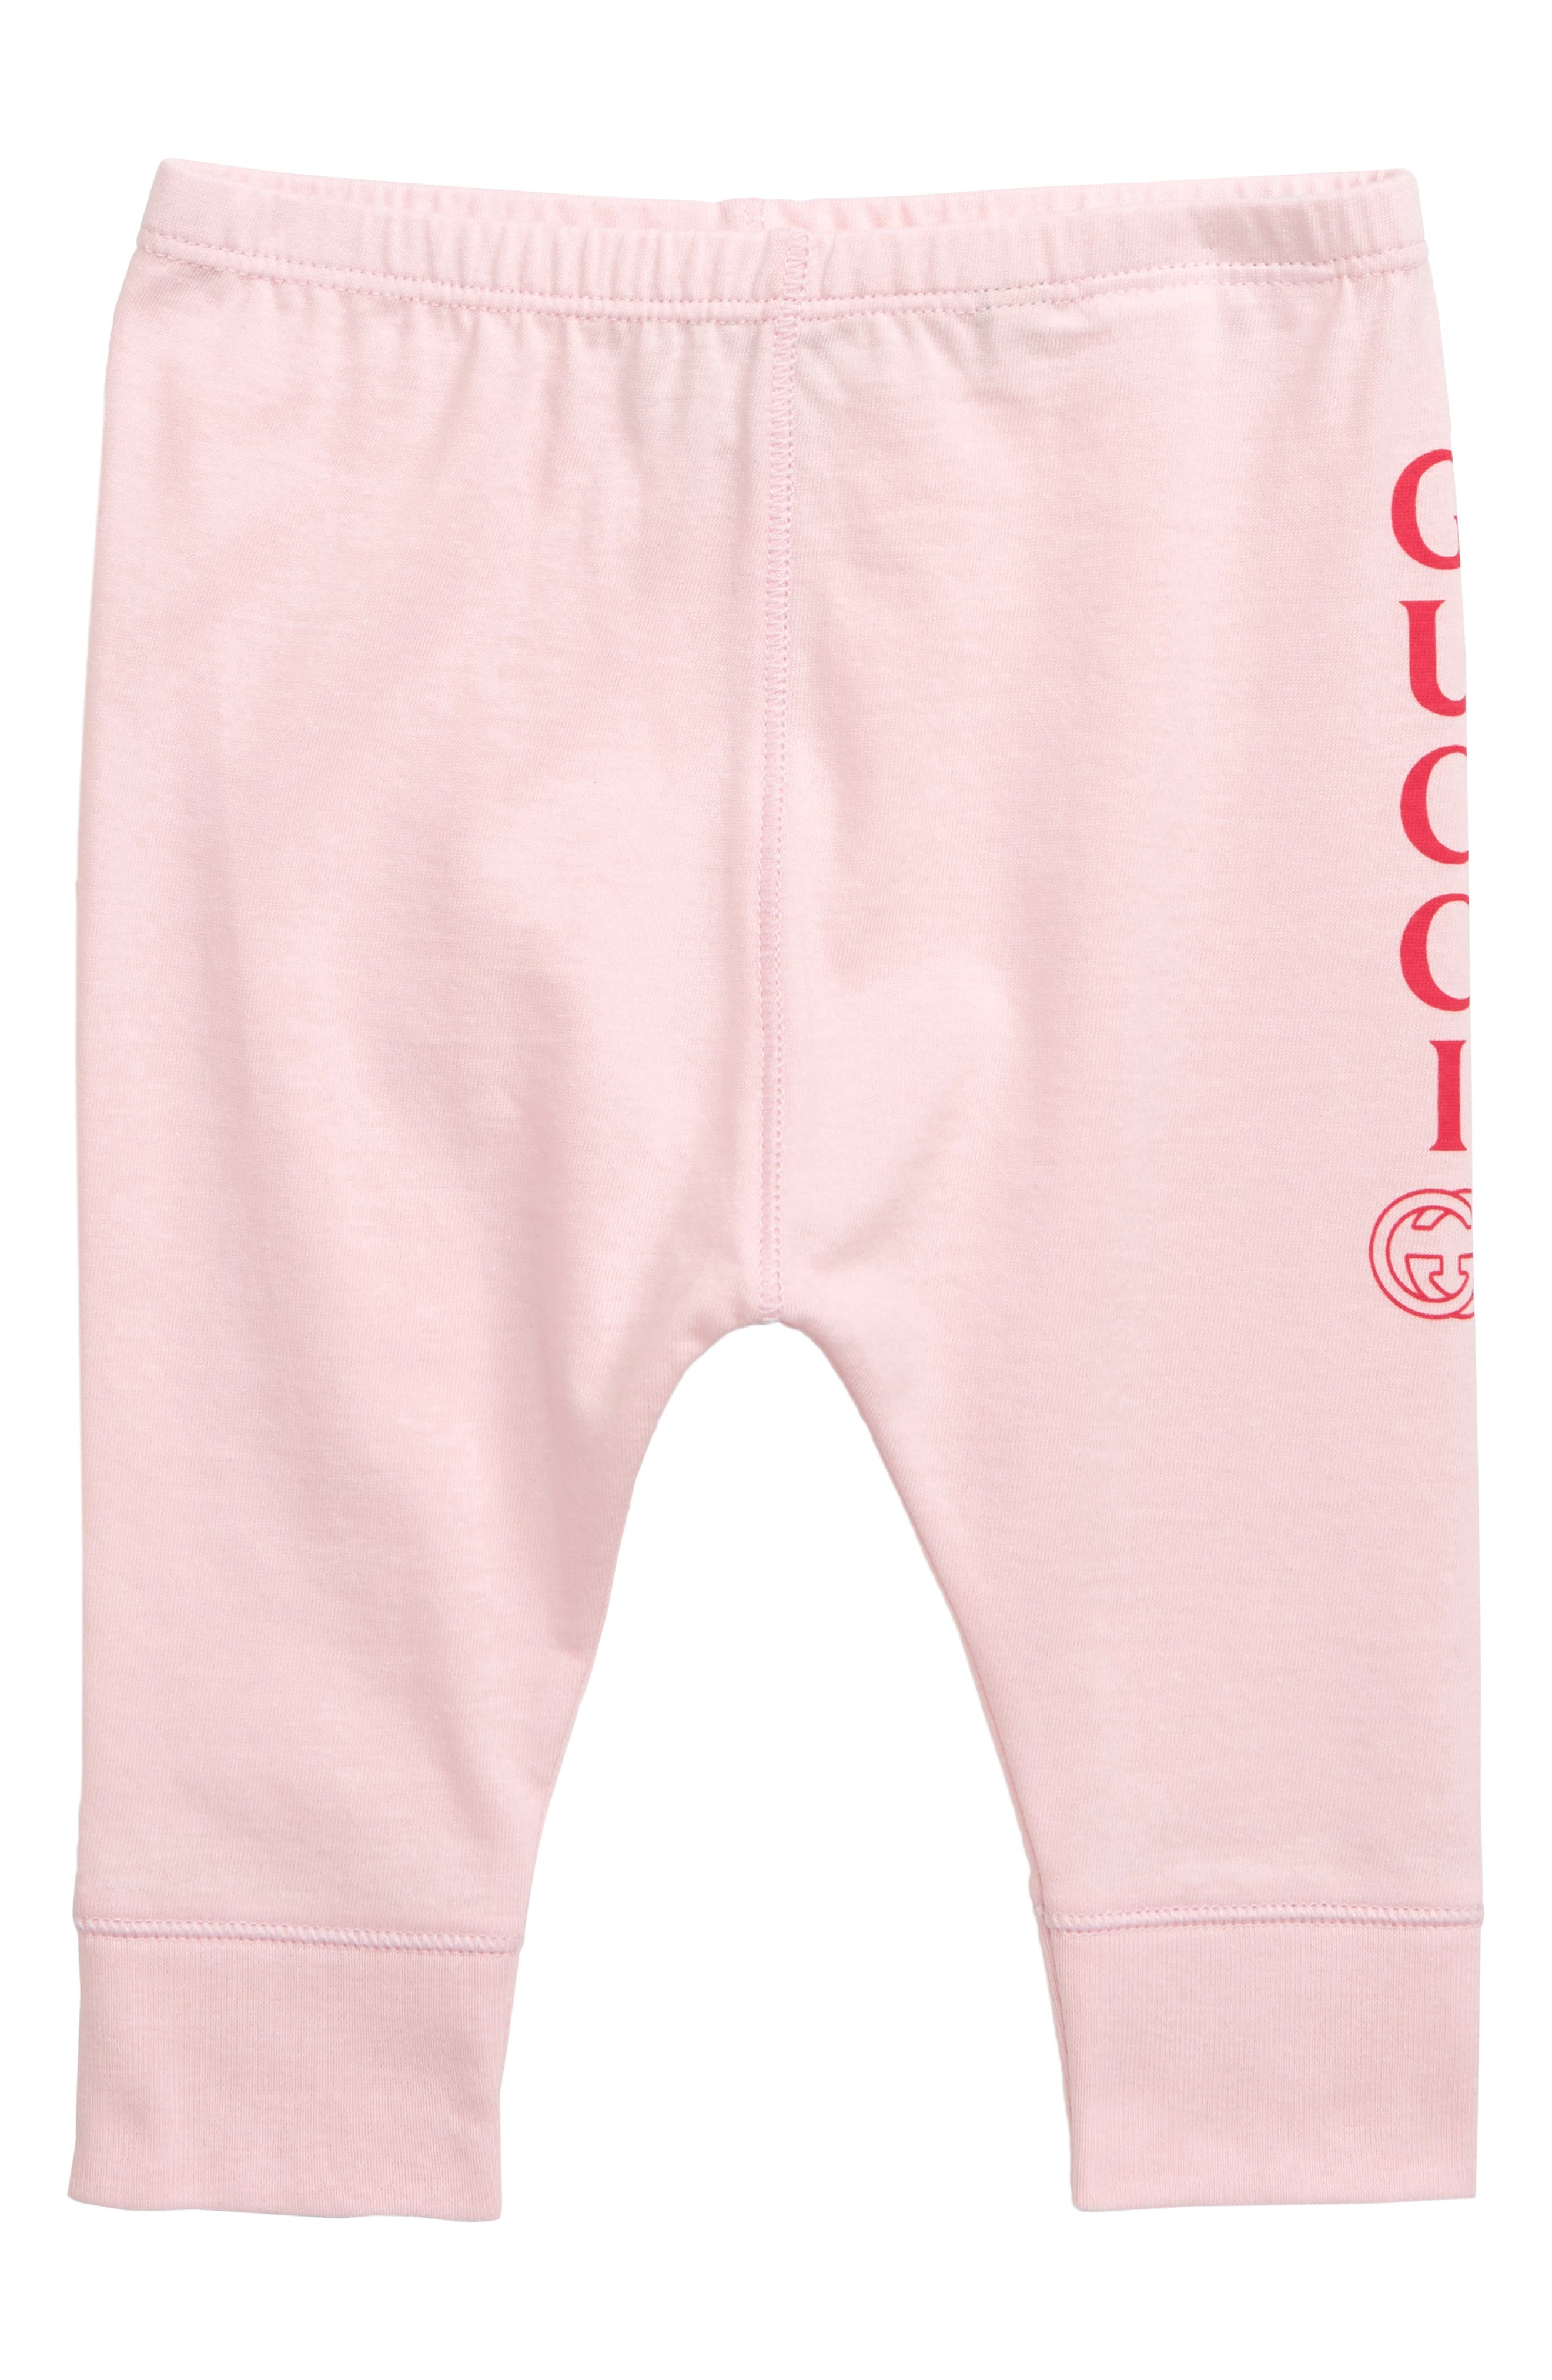 GUCCI, Logo Leggings, Main thumbnail 1, color, PALE PINK SAND/ RED